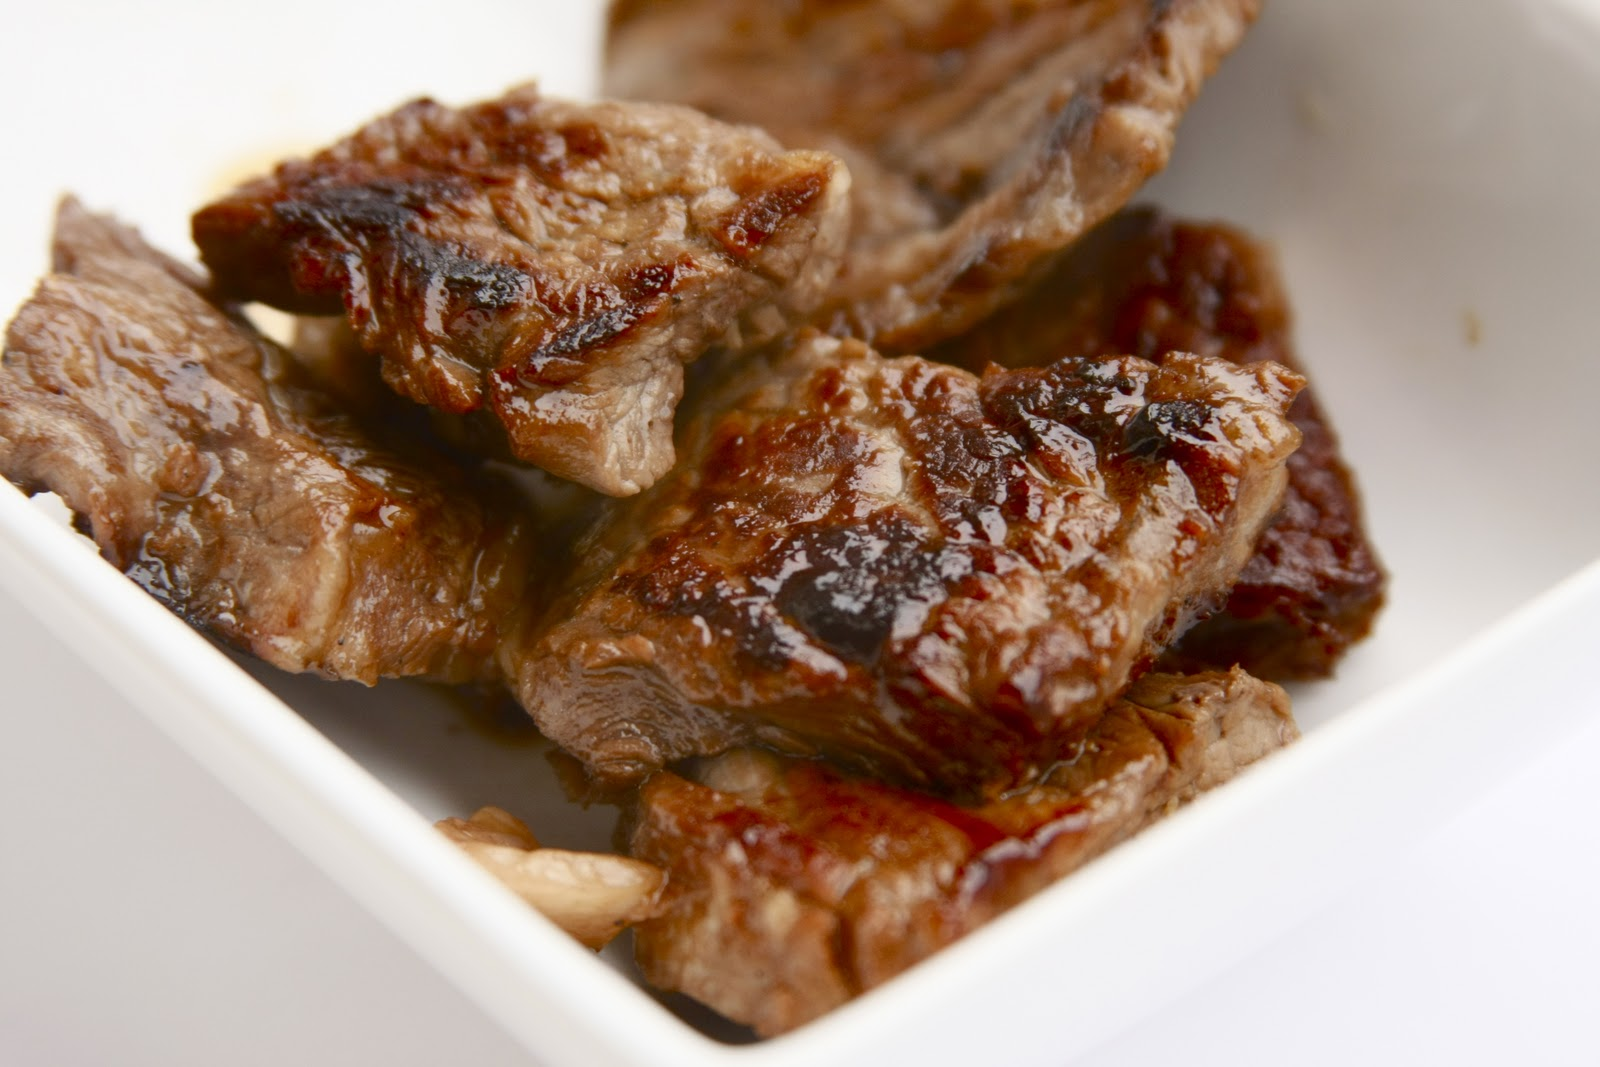 ... in Italy and Beyond: Diced Steak Marinated in Teriyaki Sauce & Lime